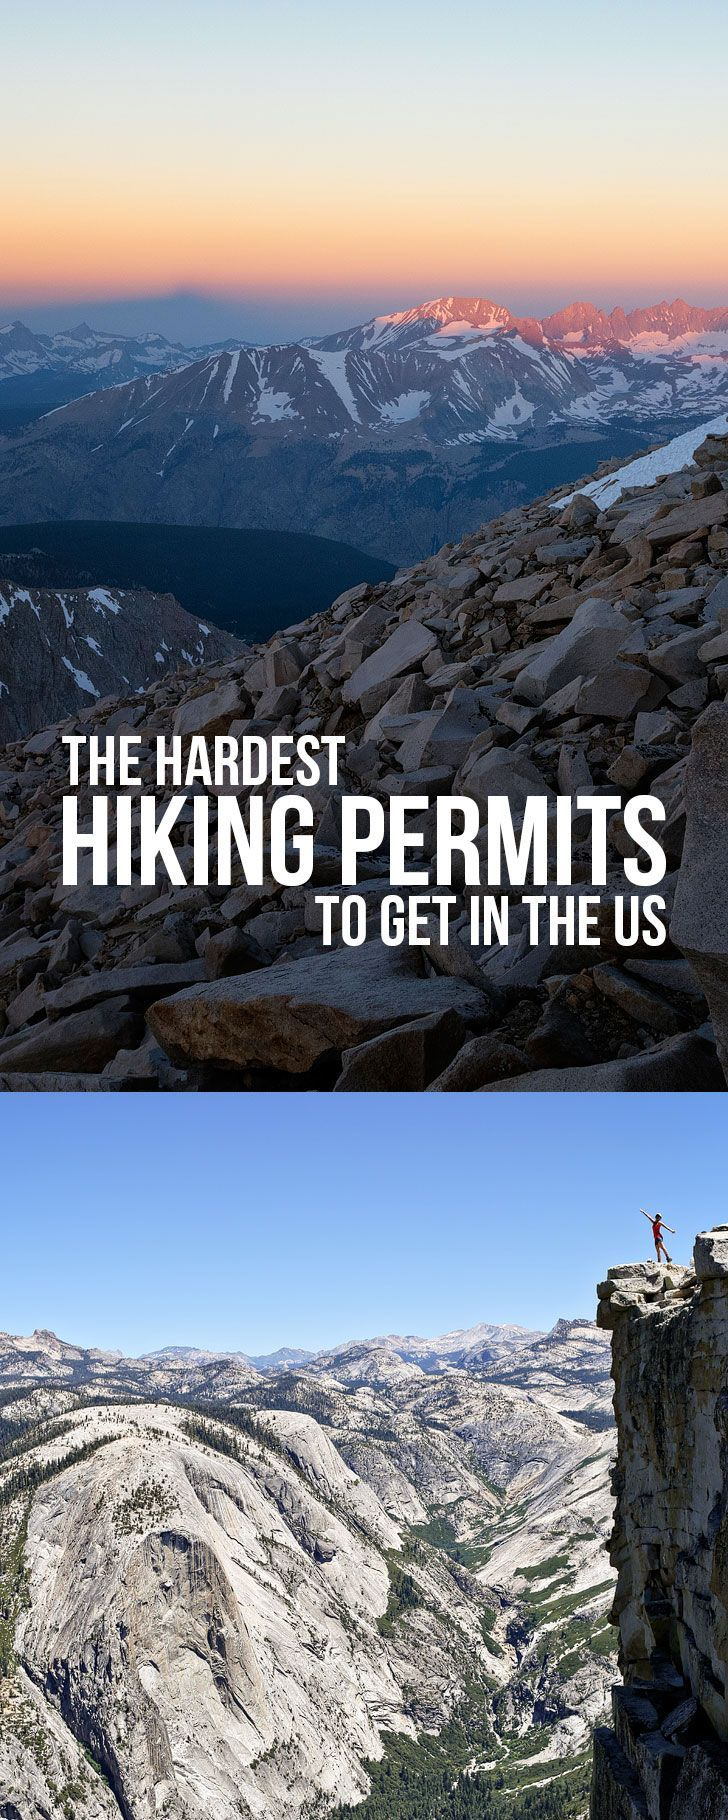 11 Famous Hiking Trails with the Hardest